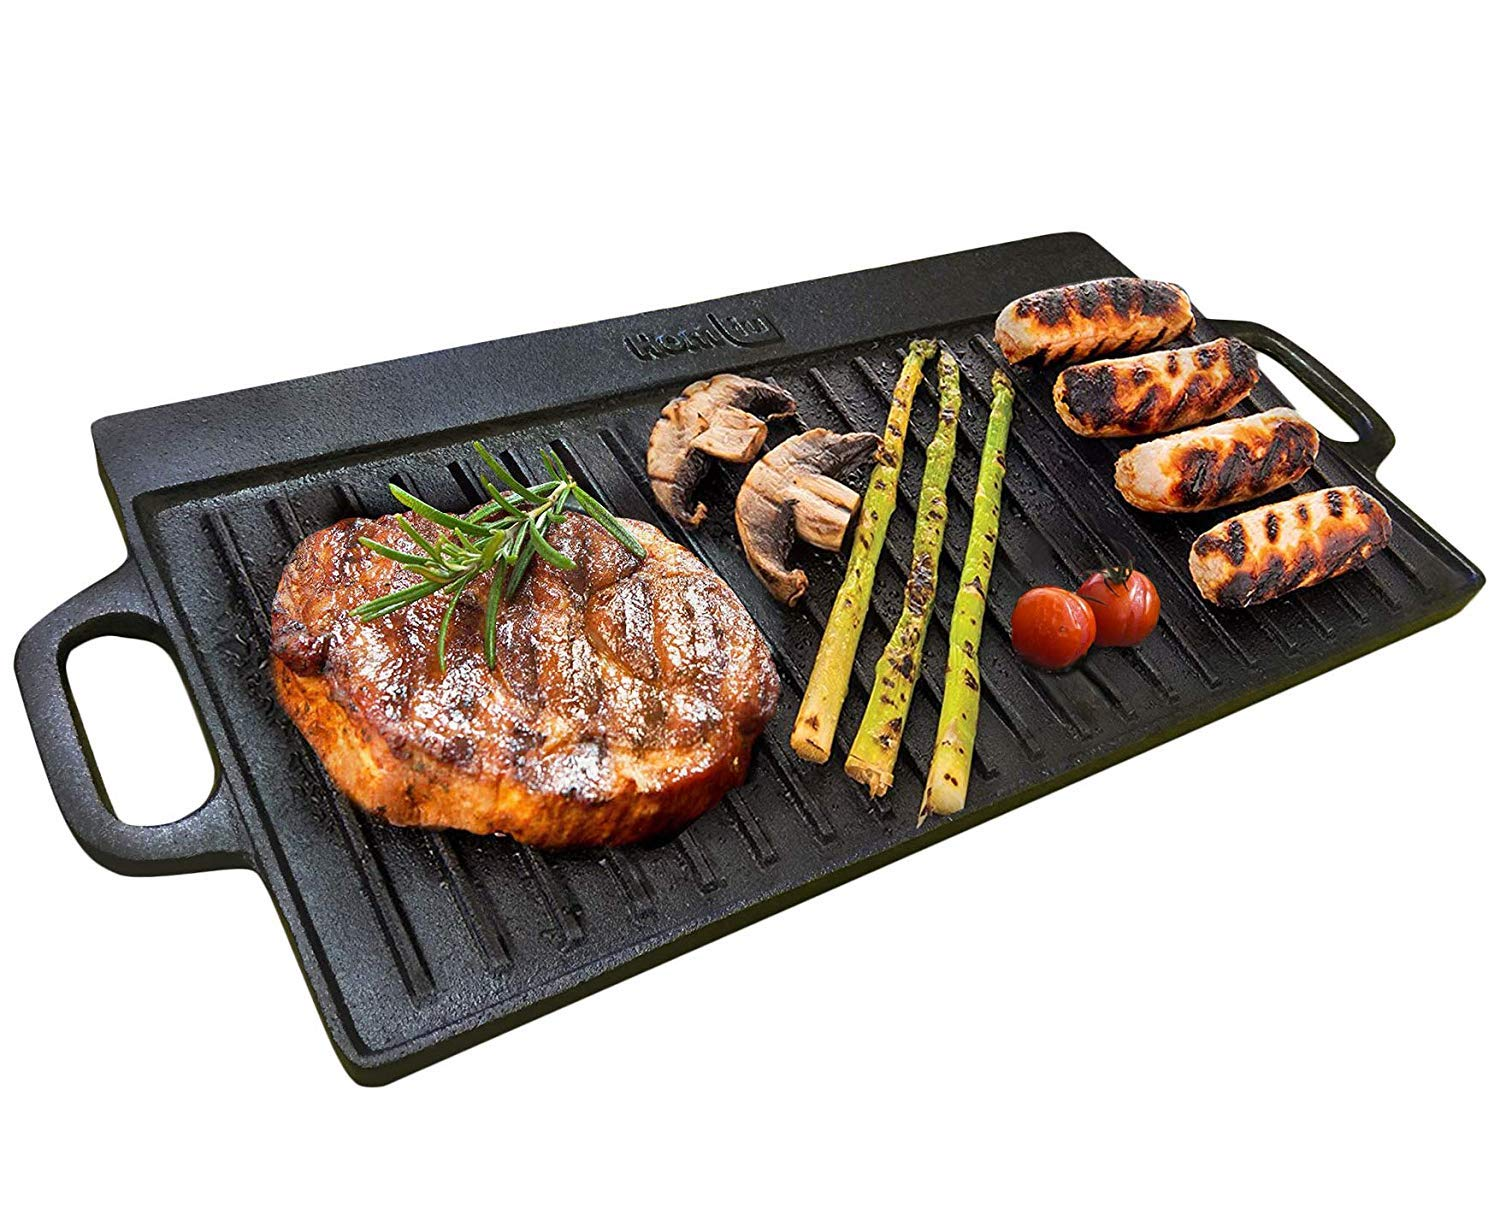 Homiu Cast Iron Reversible Griddle Pan, Double Sided and Reversible with Non Stick Ridged and Flat Surfaces and Integral Drip Tray for Stoves and Grills